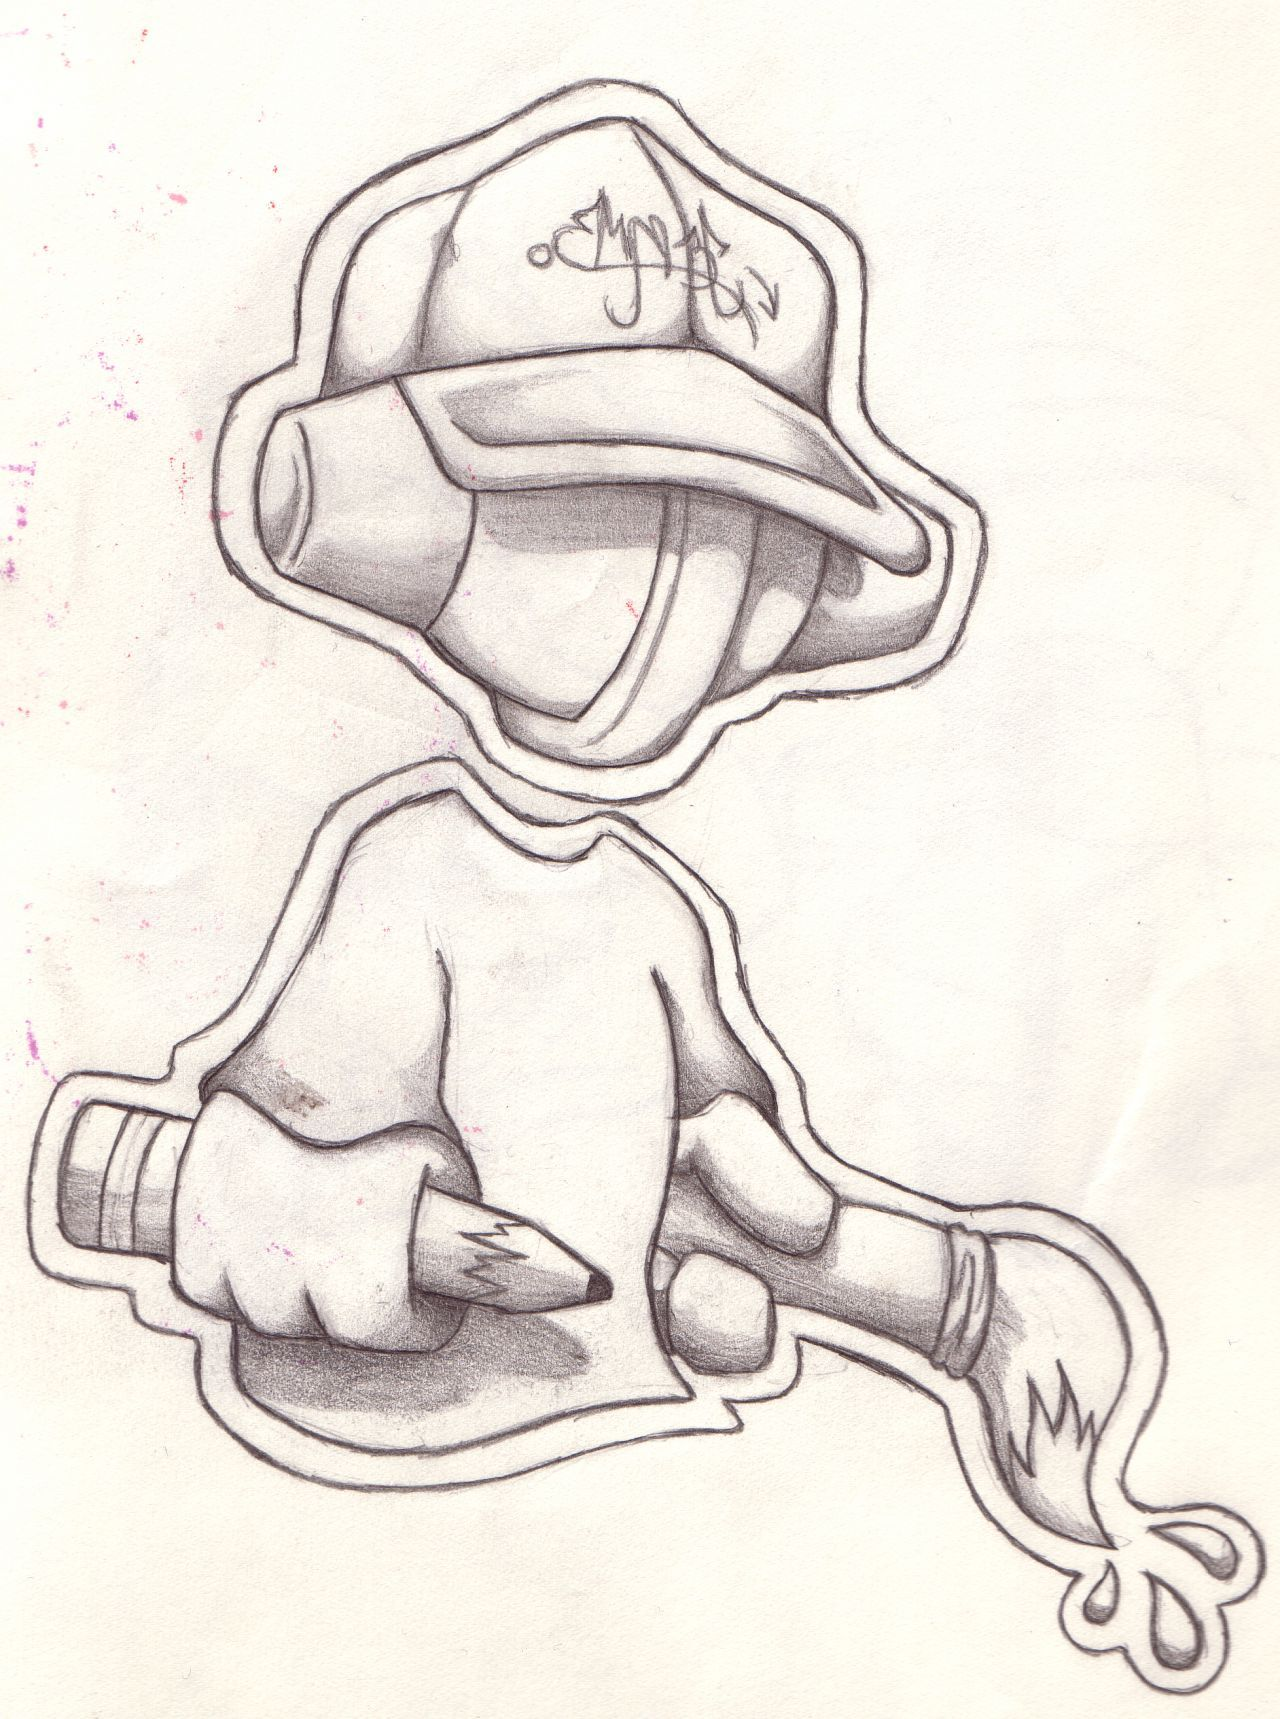 Cool Easy Graffiti Character Drawings Graffiti Street Art